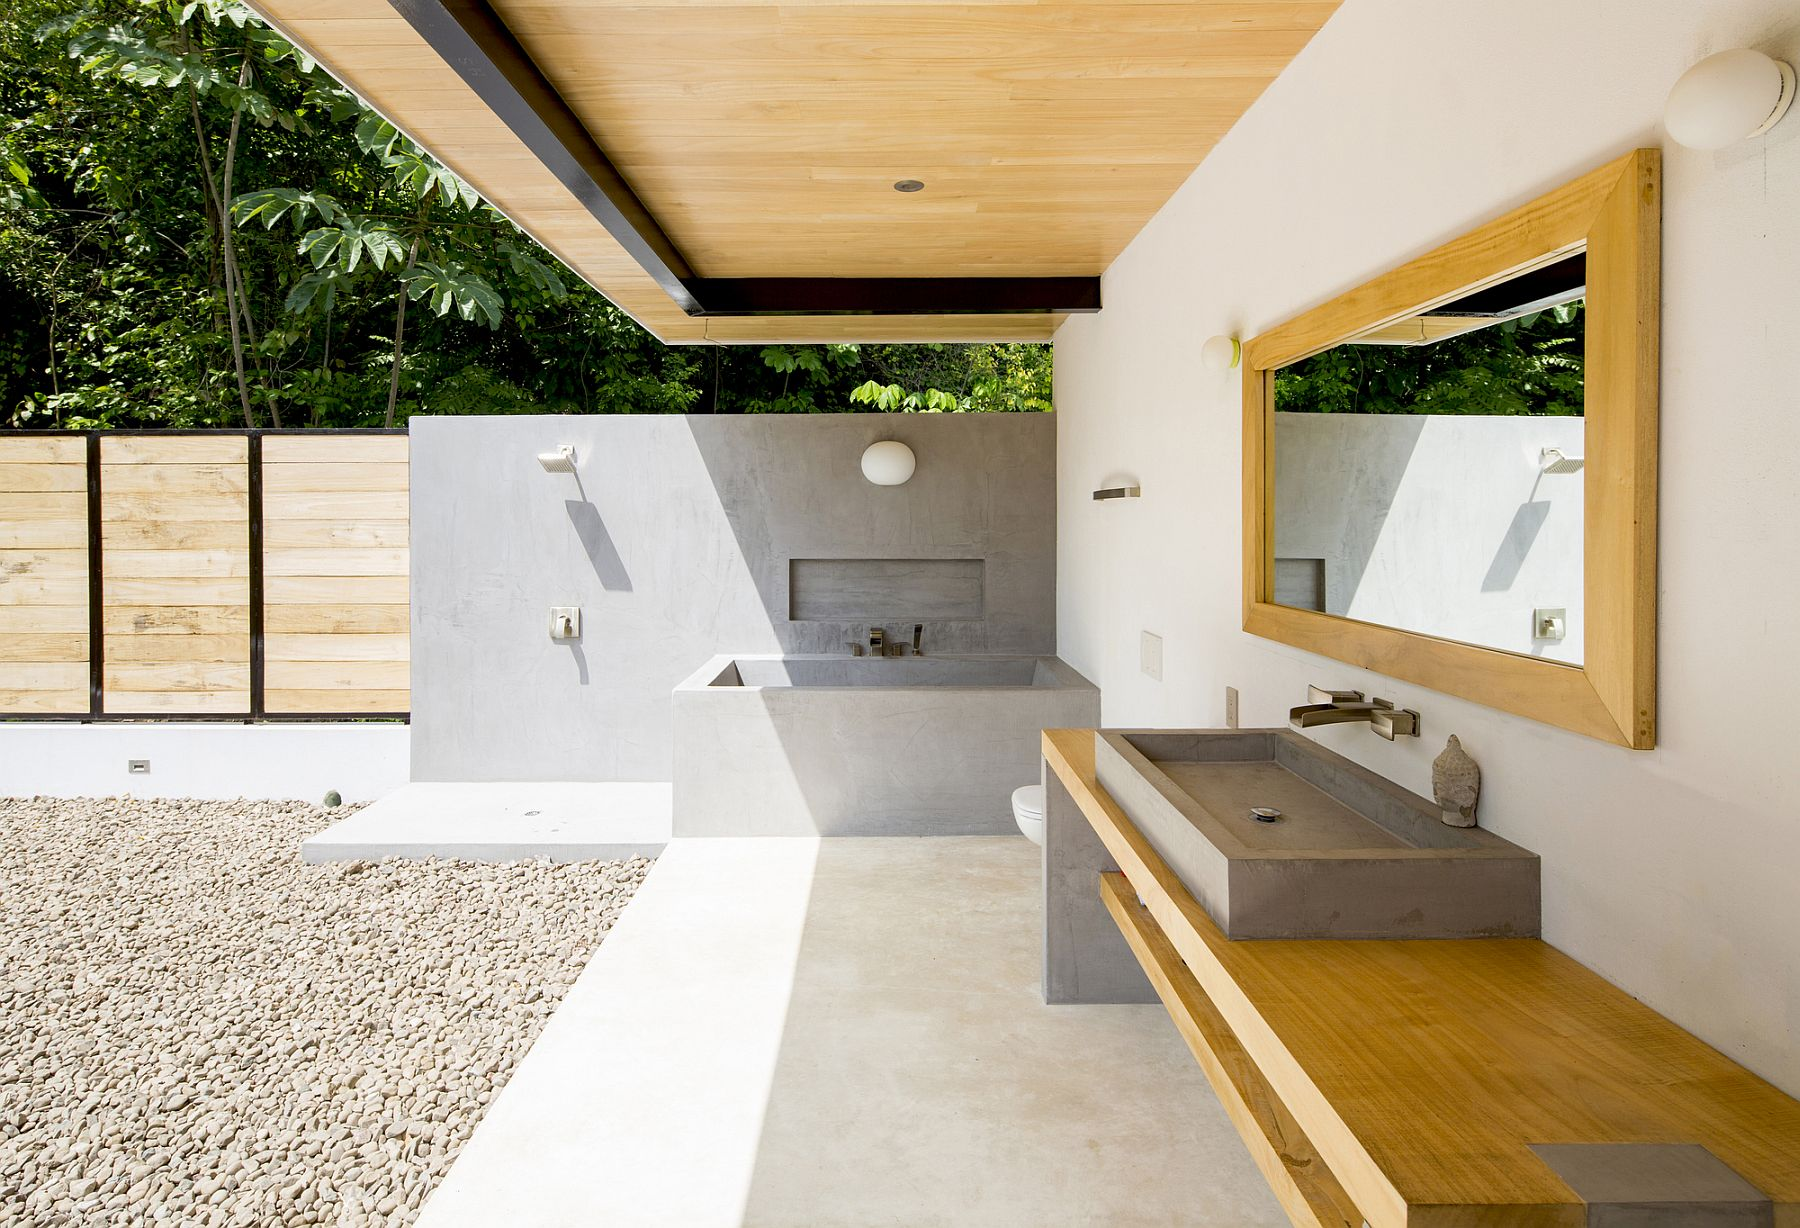 Minimal bath at the Ocean Eye brings the outdoors inside